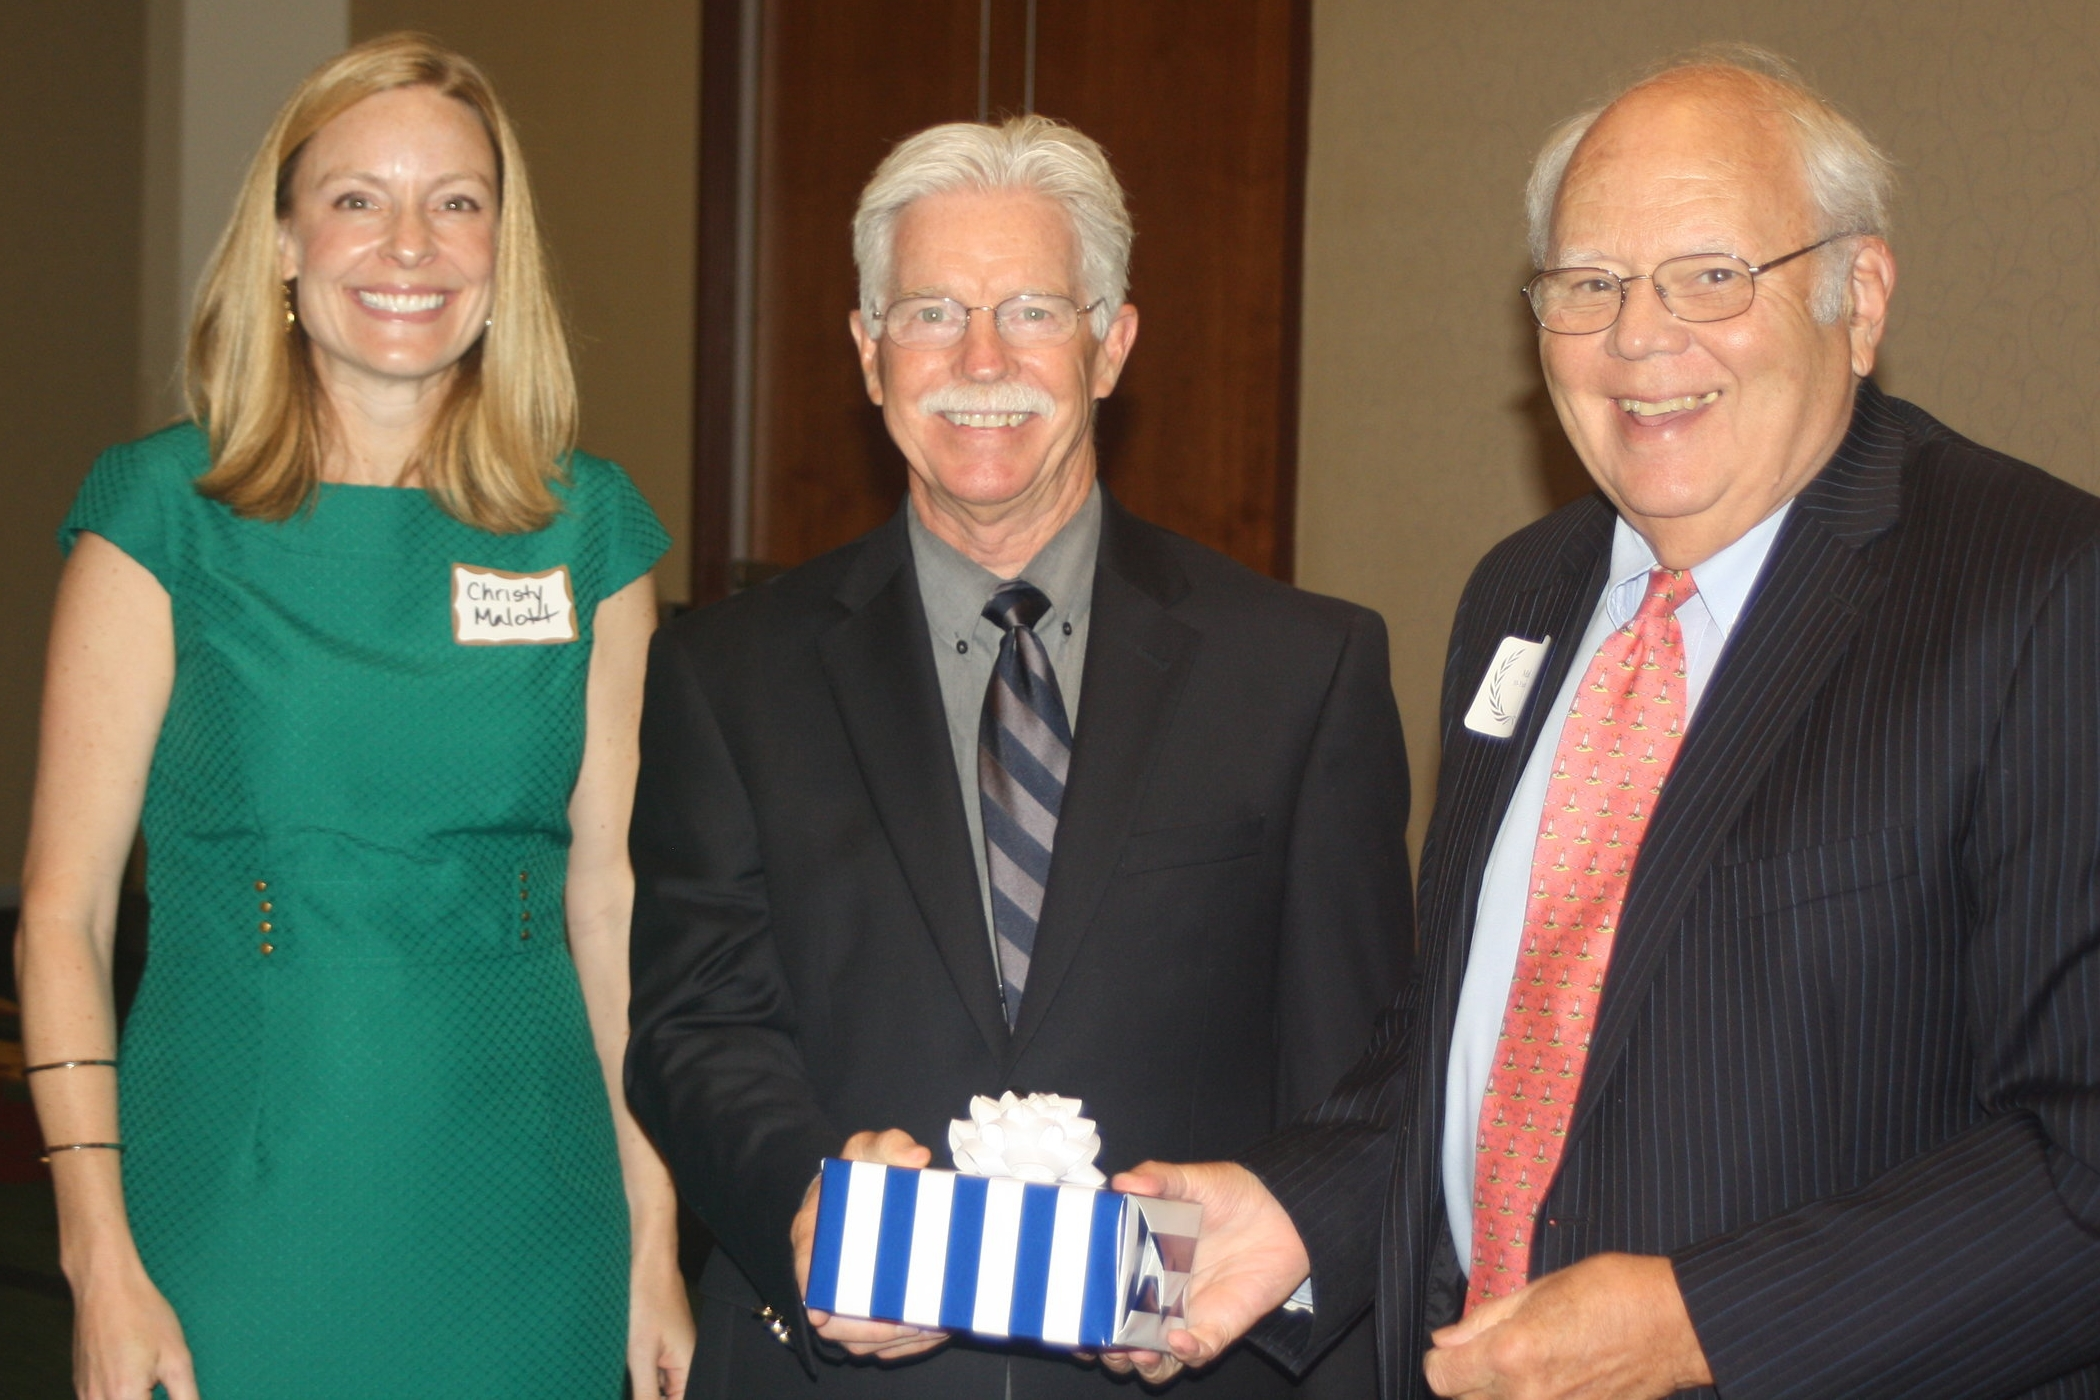 (l-r) Christy Malott (former President of the 14th Judicial Bar Association),  Guy W. Crabtree  (current President) and  Malvern F. King, Jr.   photo courtesy of Bob Friedman, Publisher, NC Triangle Attorney at Law Magazine